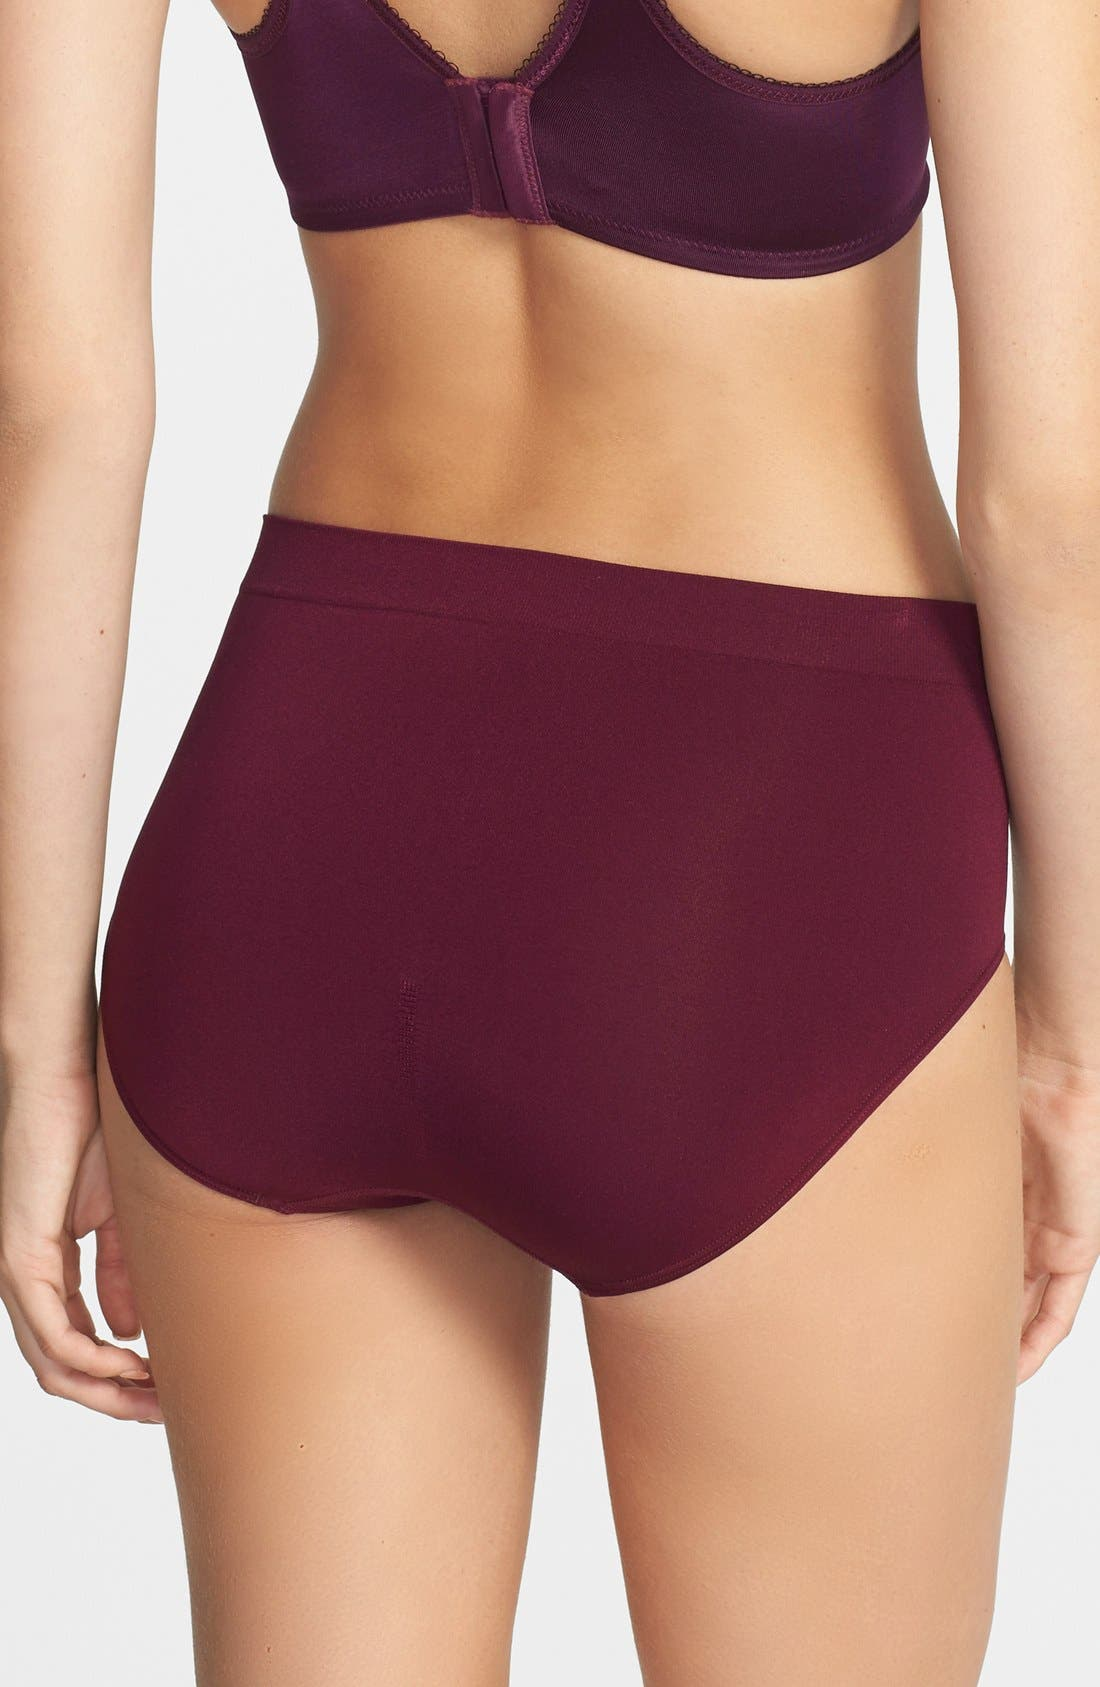 B Smooth Briefs,                             Alternate thumbnail 259, color,